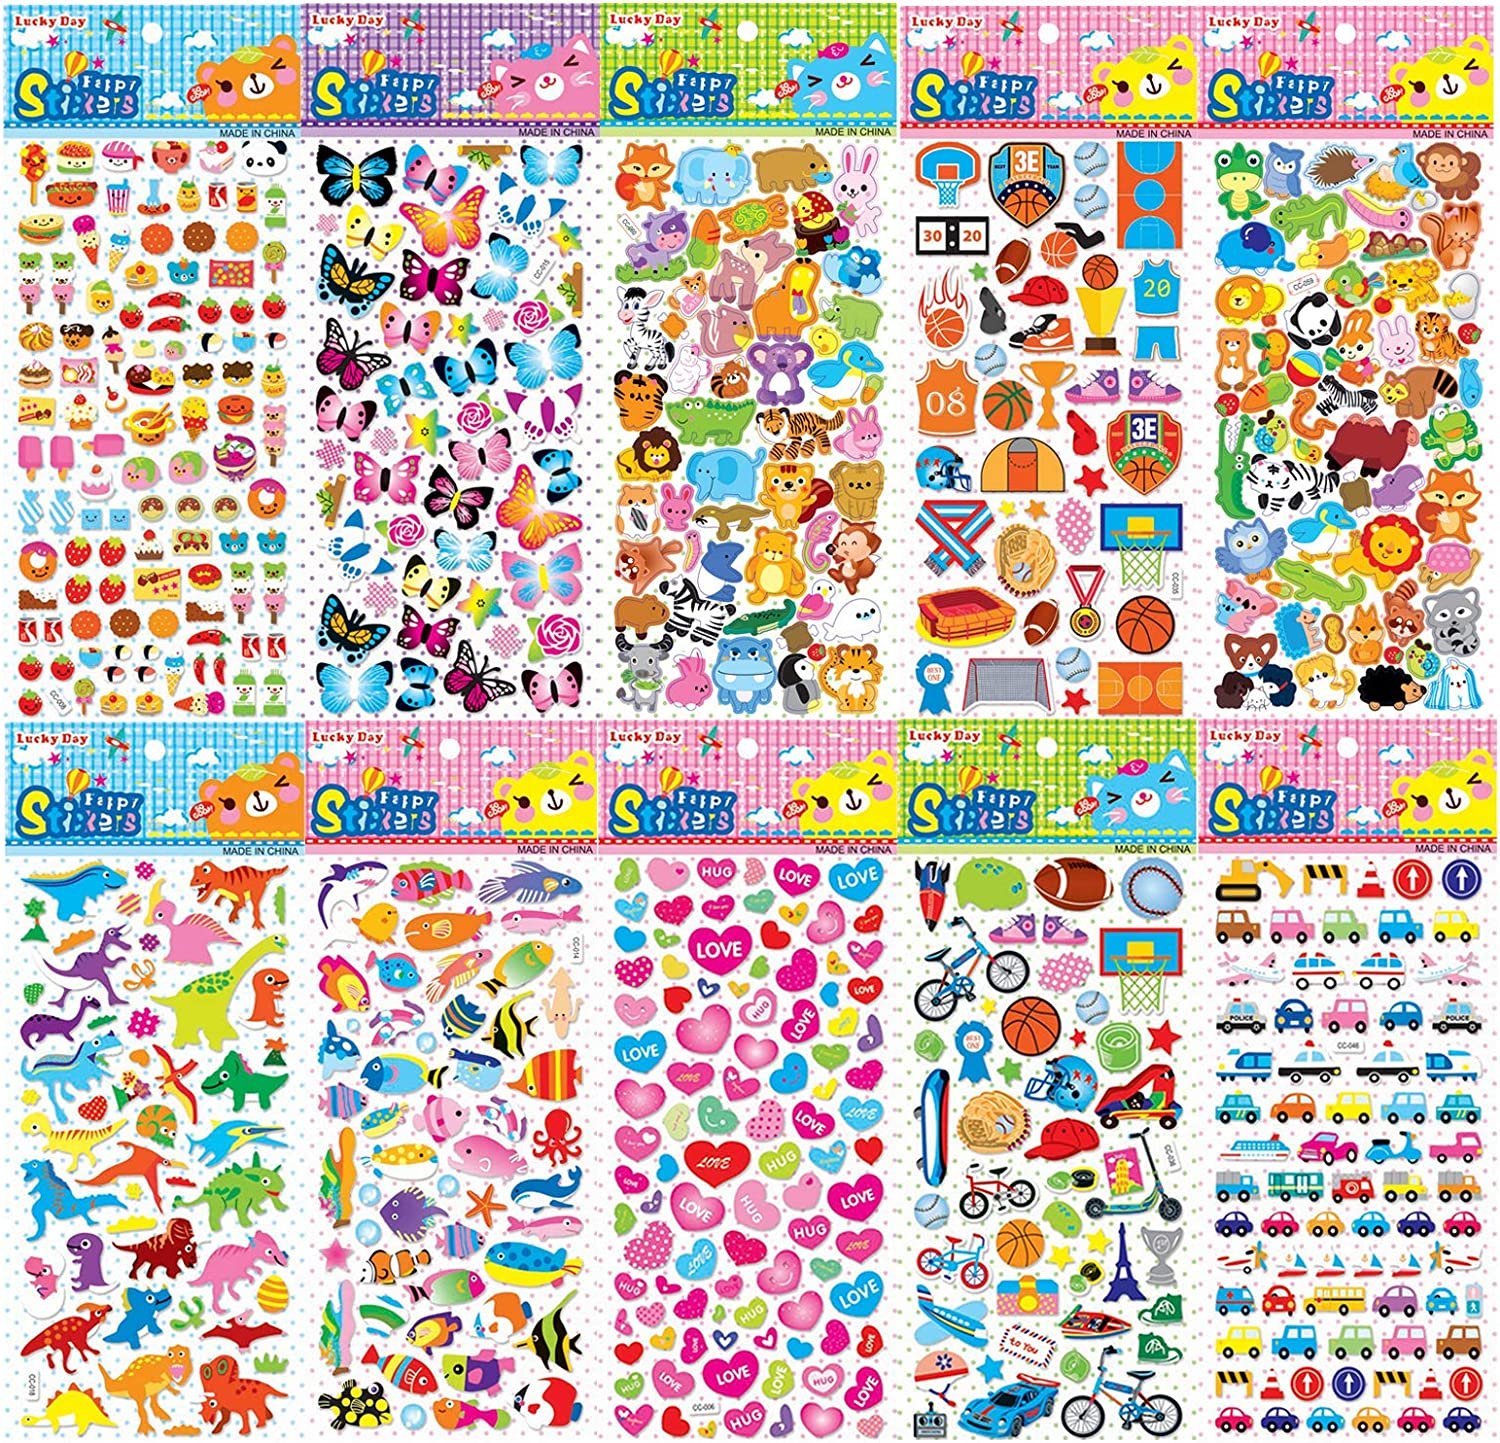 3D Puffy Stickers, Variety 10 Sheets Kids Bulk Stickers More Than 550 Patterns Reusable 3D Stickers for Kids Toddlers Including Dinosaurs, Cars, Trucks, Airplane, Food, Letters, Fruit, Hearts